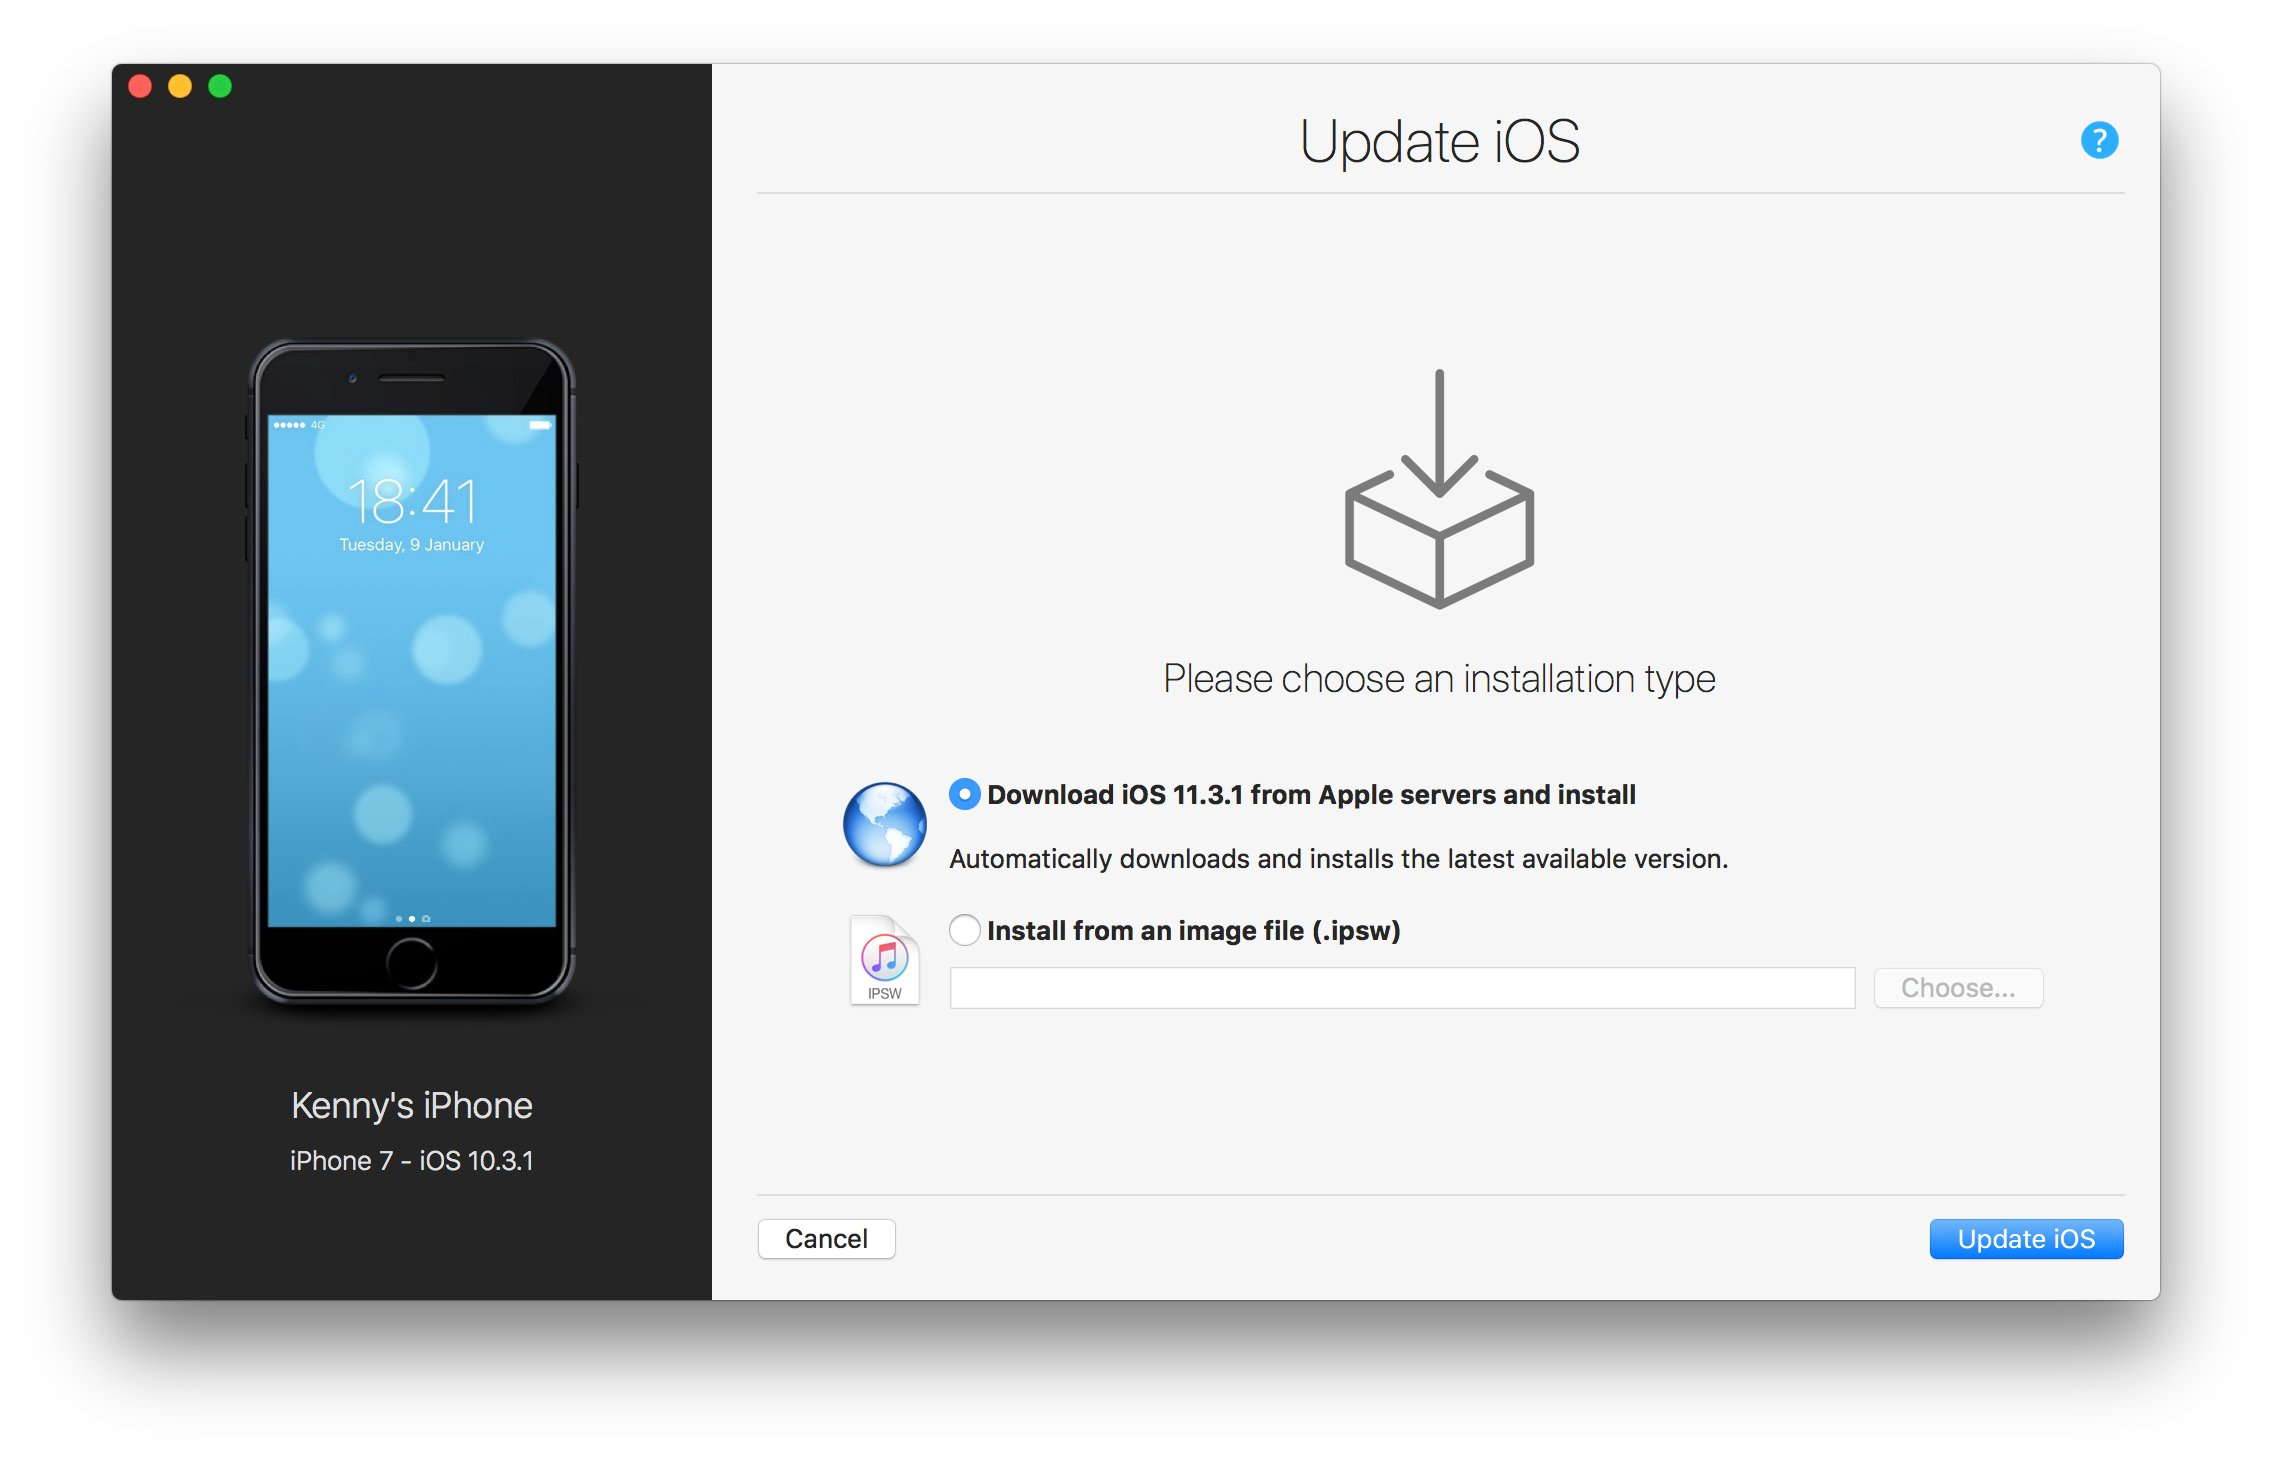 Update iOS on your iPhone, iPad or iPod touch safely